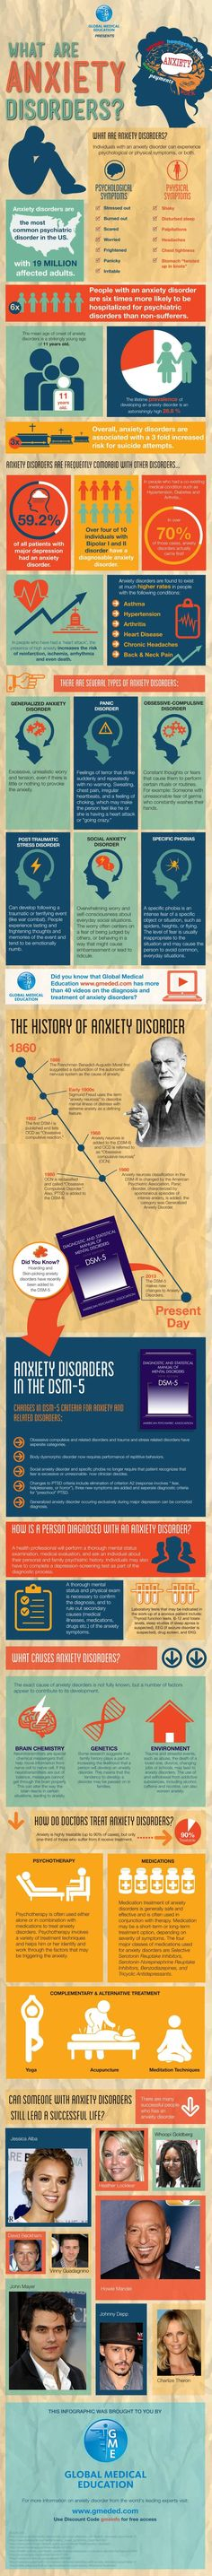 13 Major Symptoms of an Anxiety Disorder #anxiety